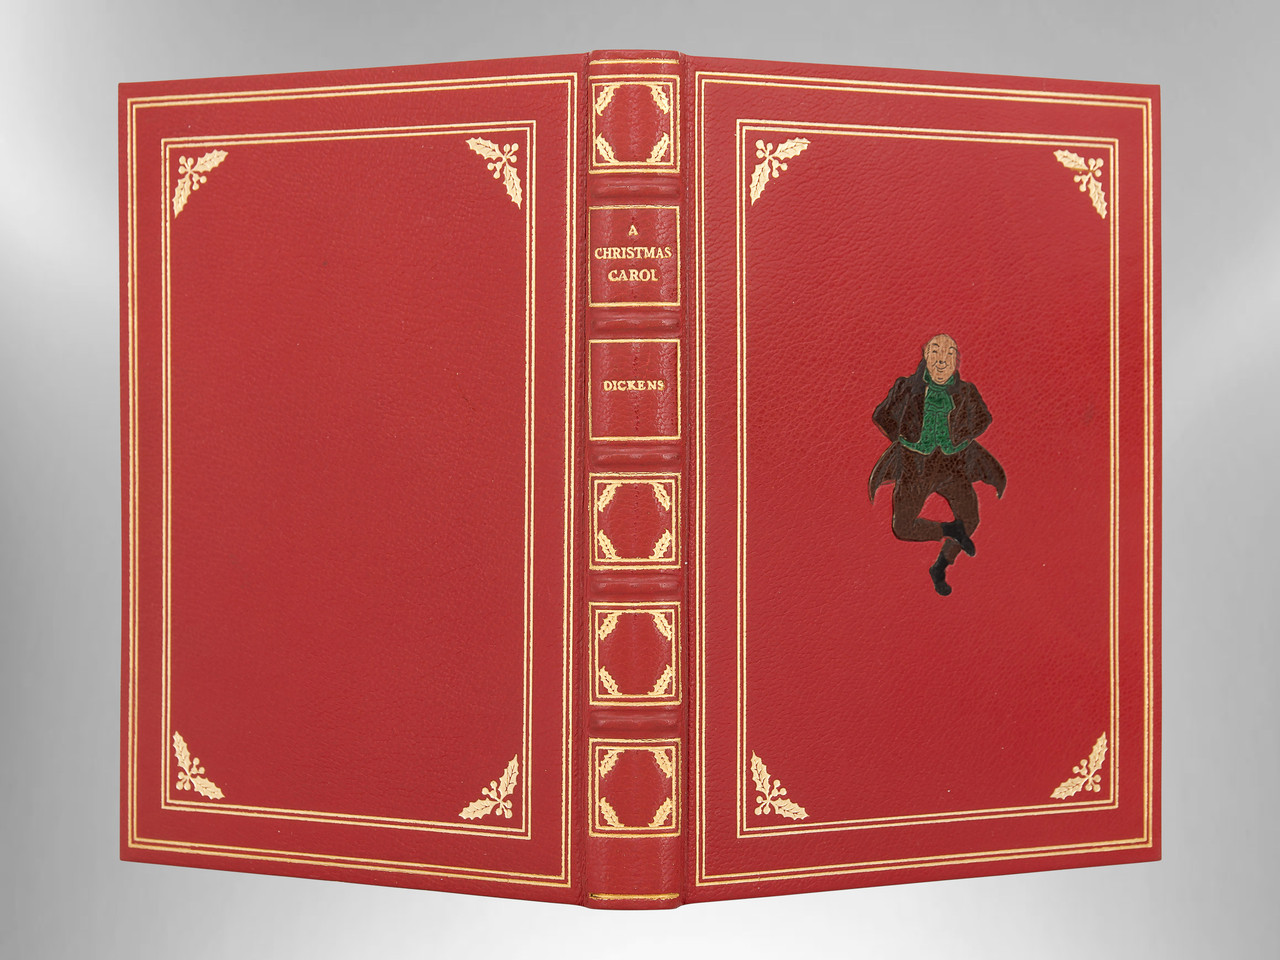 A Christmas Carol by Charles Dickens, Monastery Hill Inlaid Leather Binding